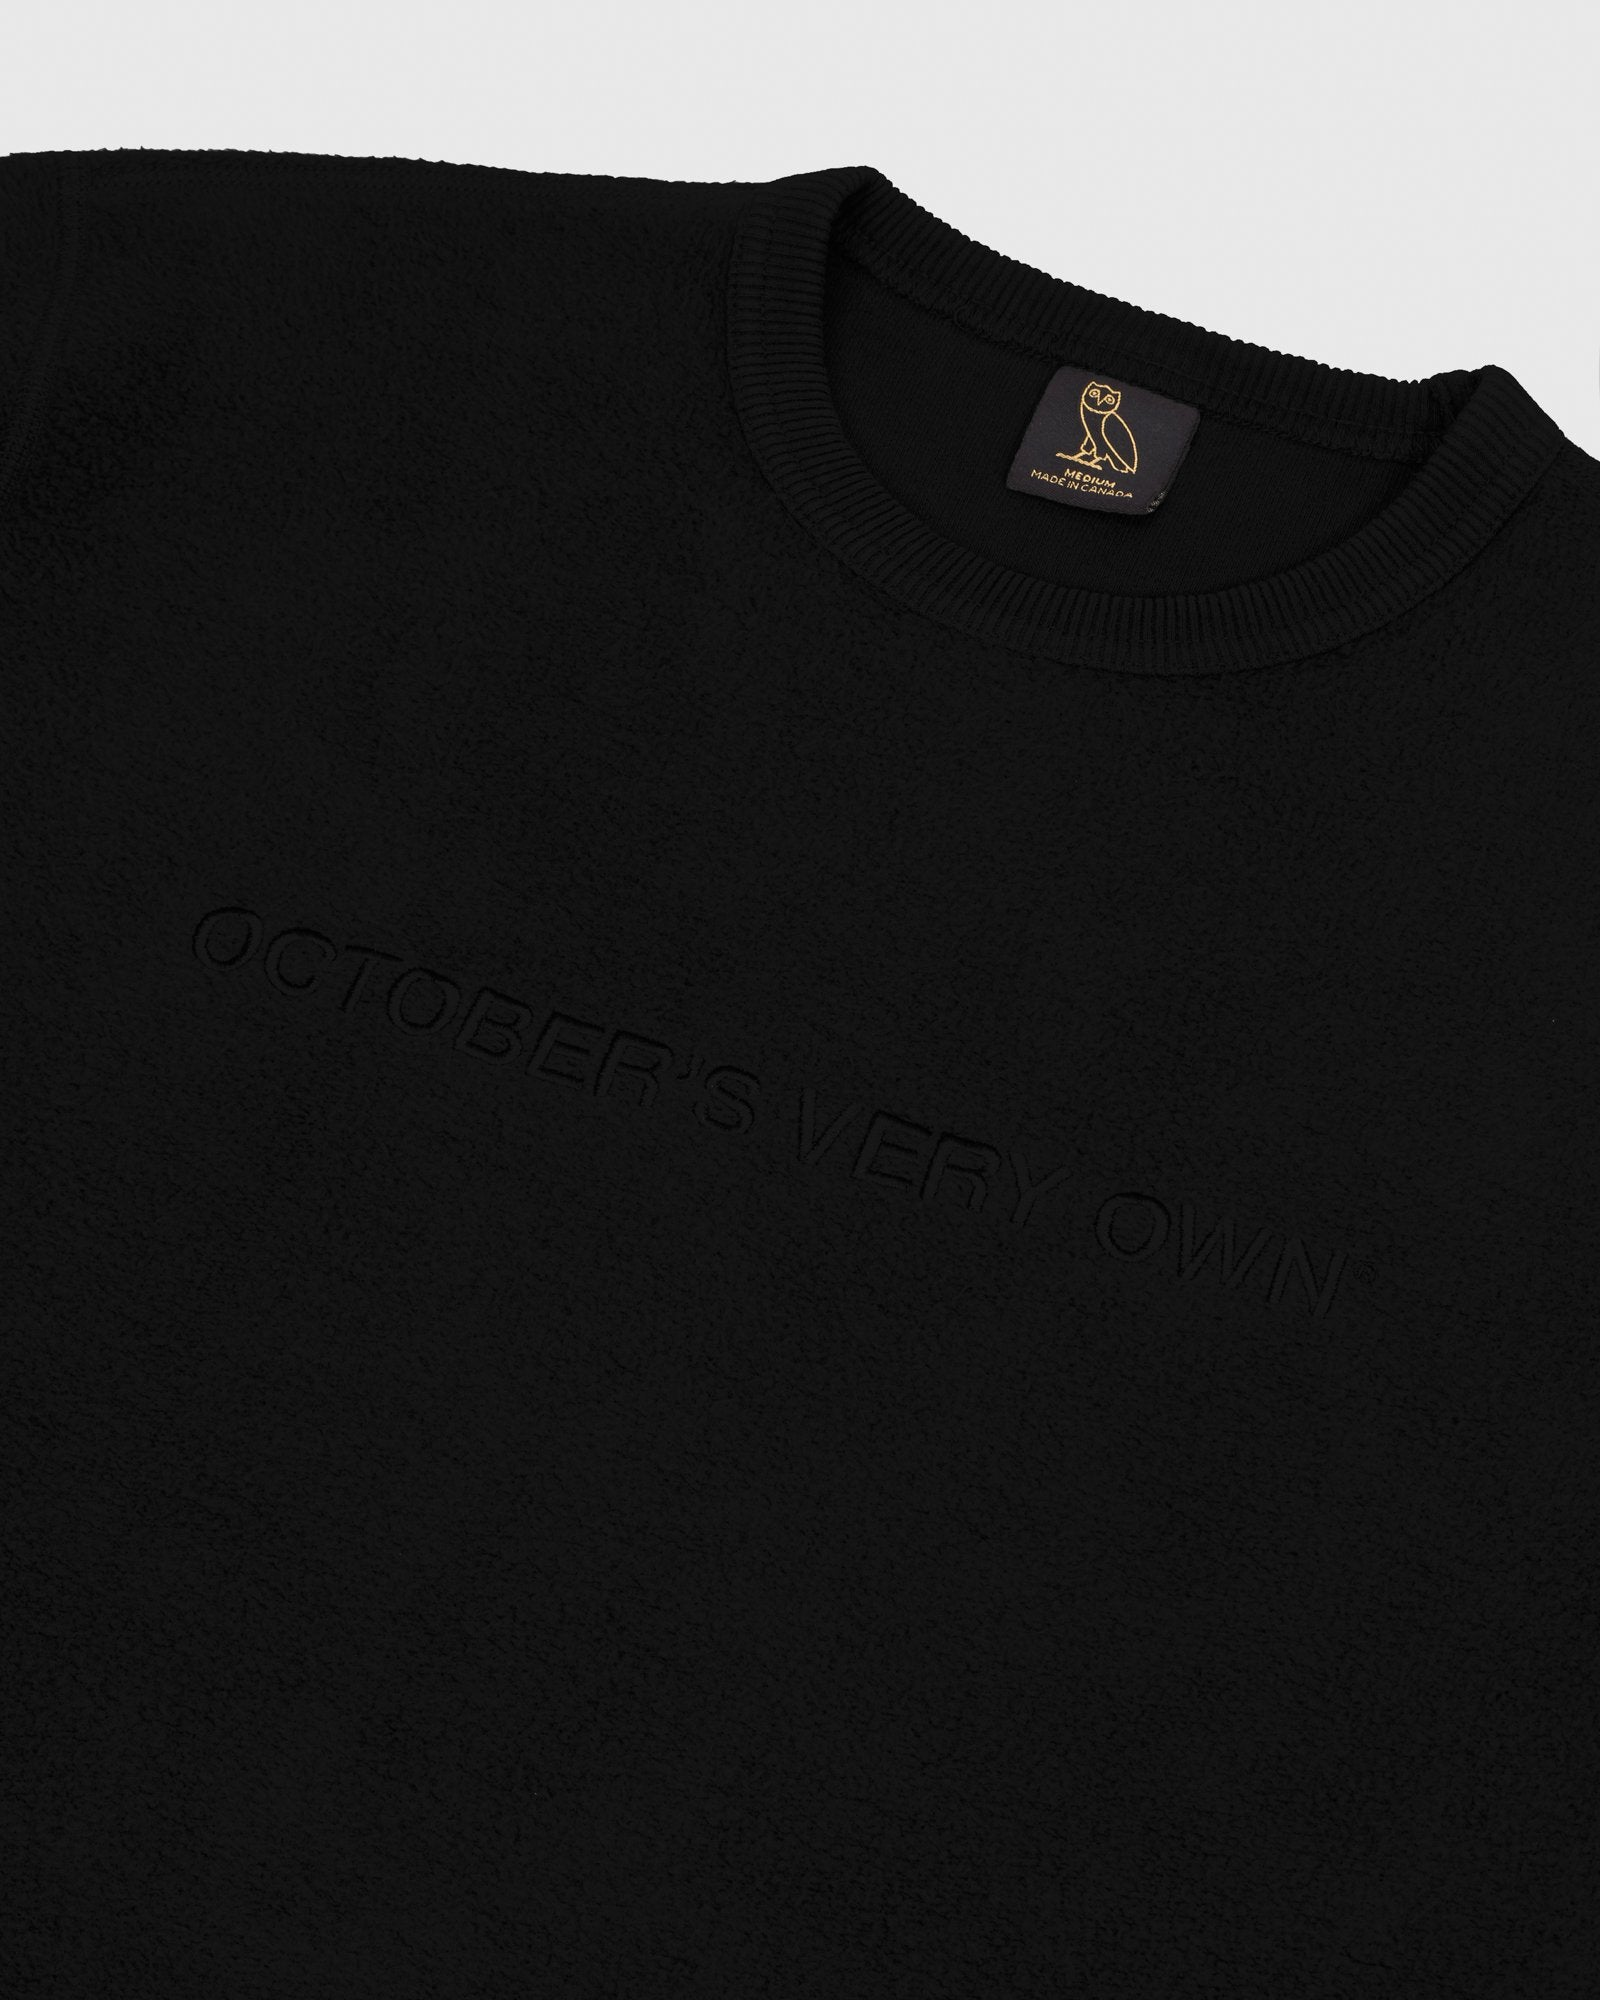 REVERSE FLEECE CREWNECK - BLACK IMAGE #3